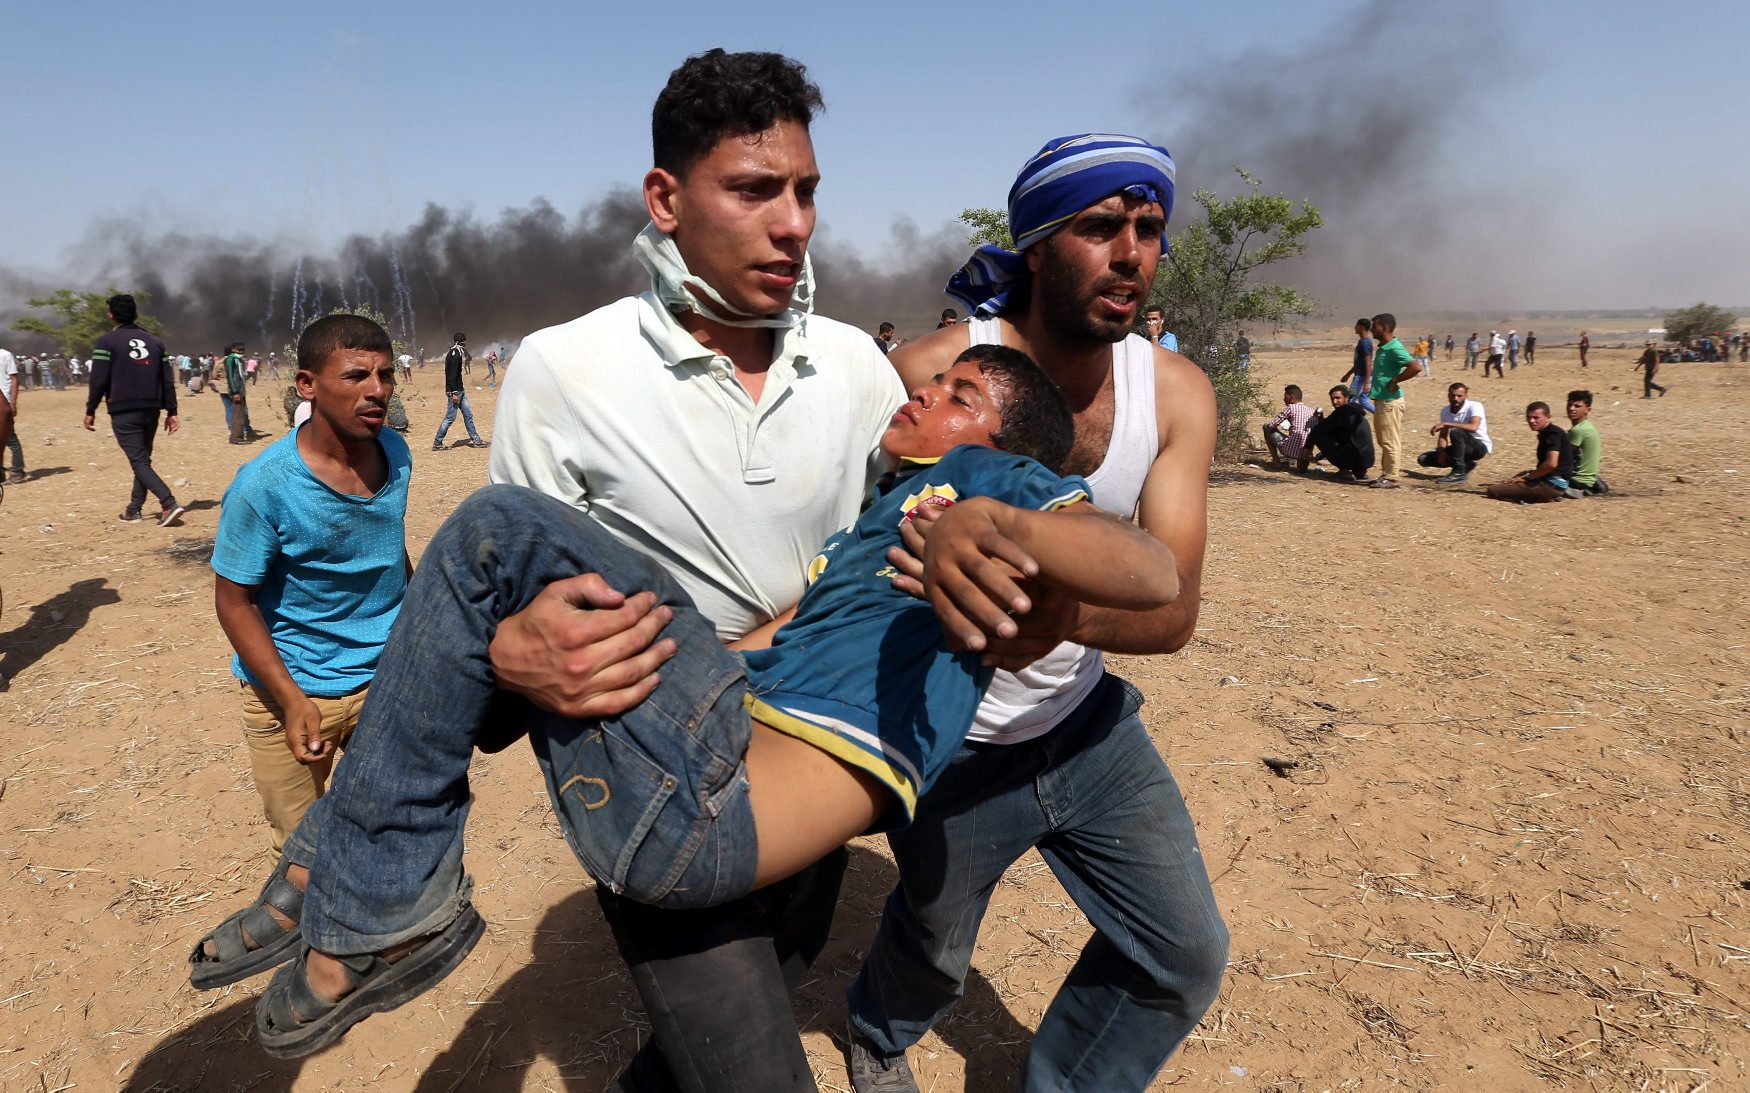 A wounded Palestinian boy is evacuated during a protest marking al-Quds Day, (Jerusalem Day), at the Israel-Gaza border in the southern Gaza Strip June 8, 2018. REUTERS/Ibraheem Abu Mustafa